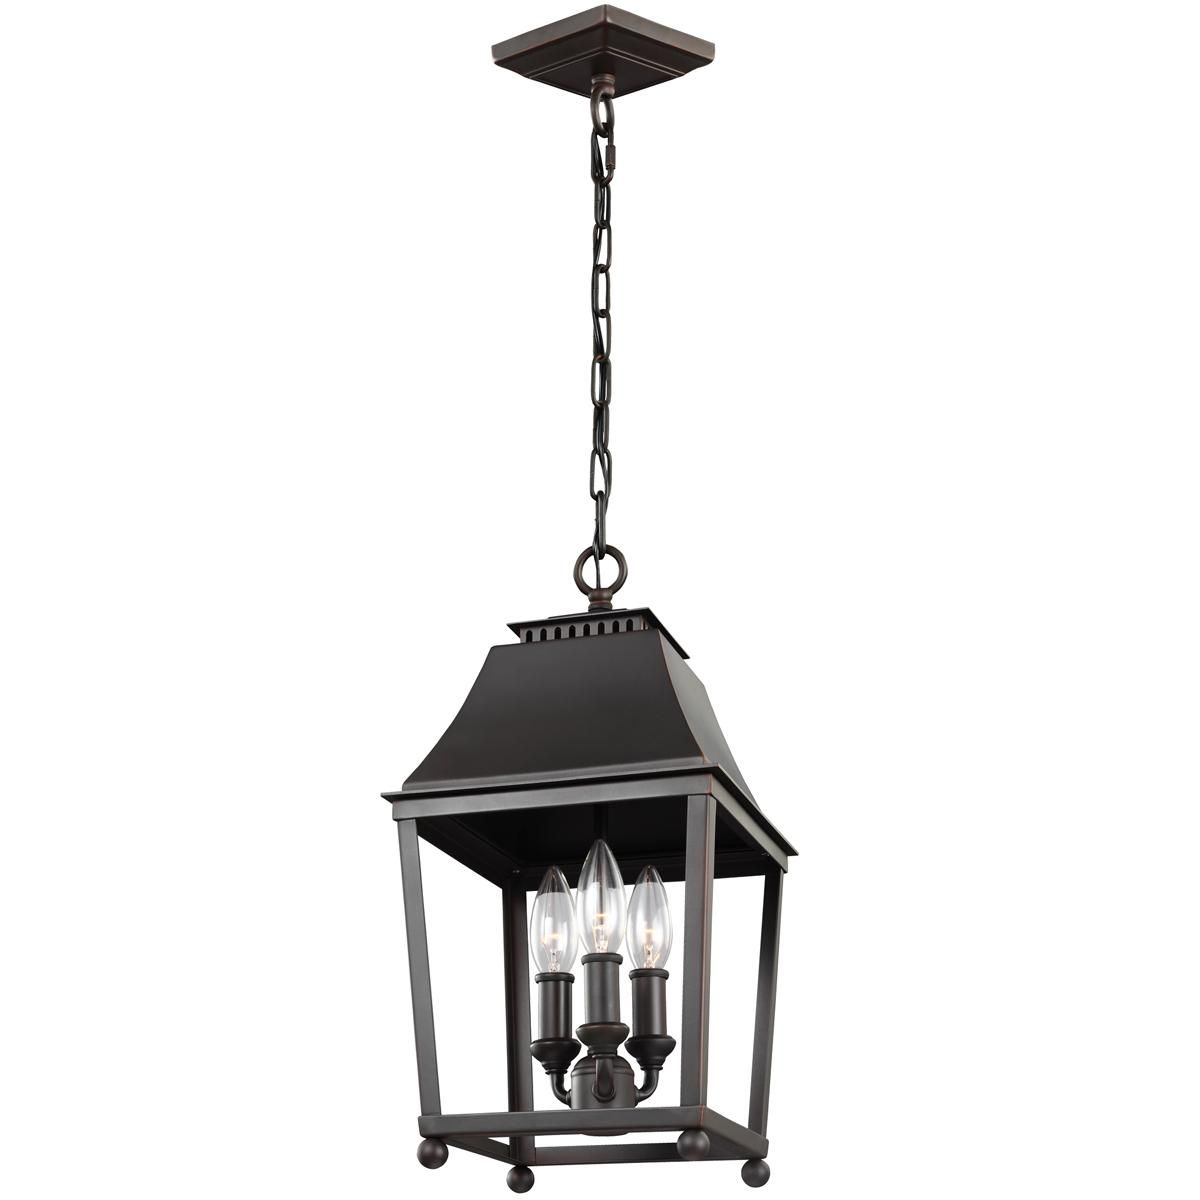 Carriage Light Lantern Small Carriage Lights Lantern Lights Small Lanterns